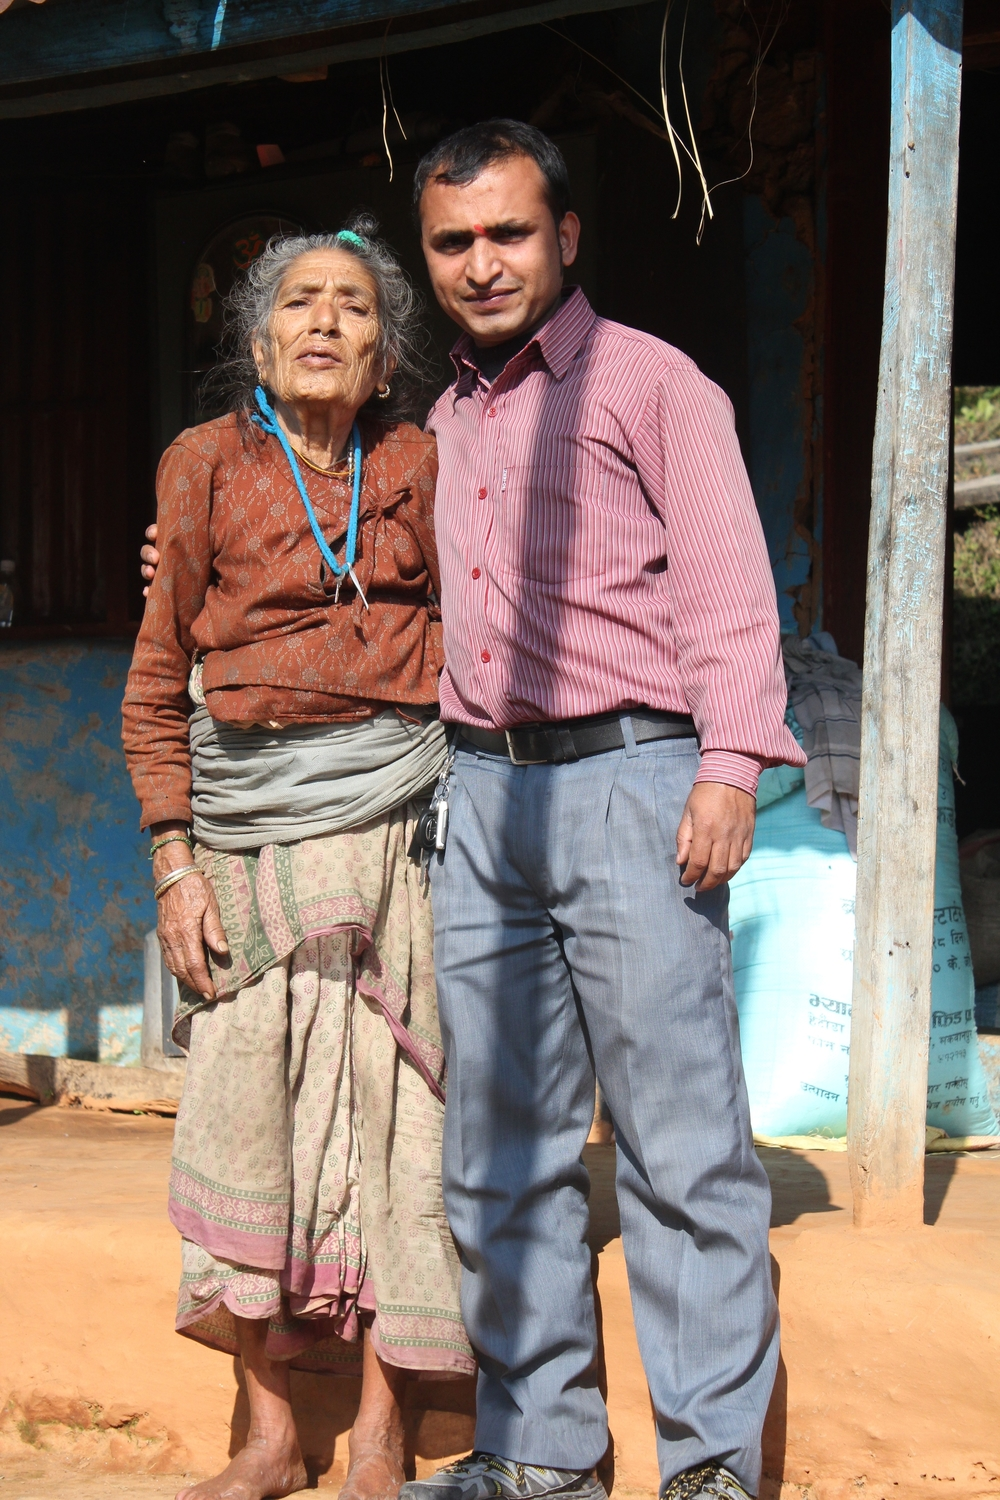 Our amazing driver Ram, with his grandmother